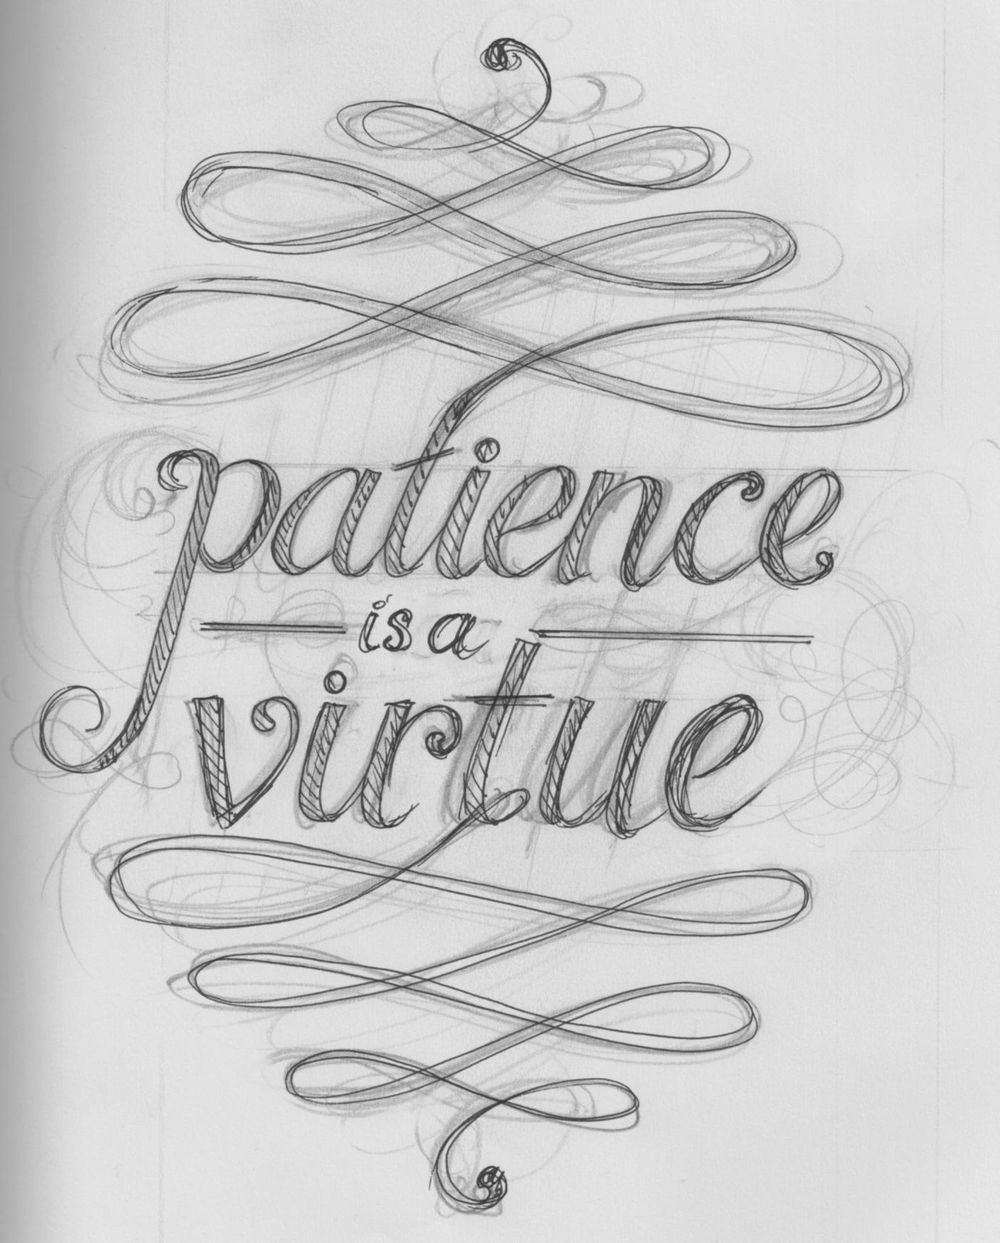 Patience is a virtue - image 5 - student project